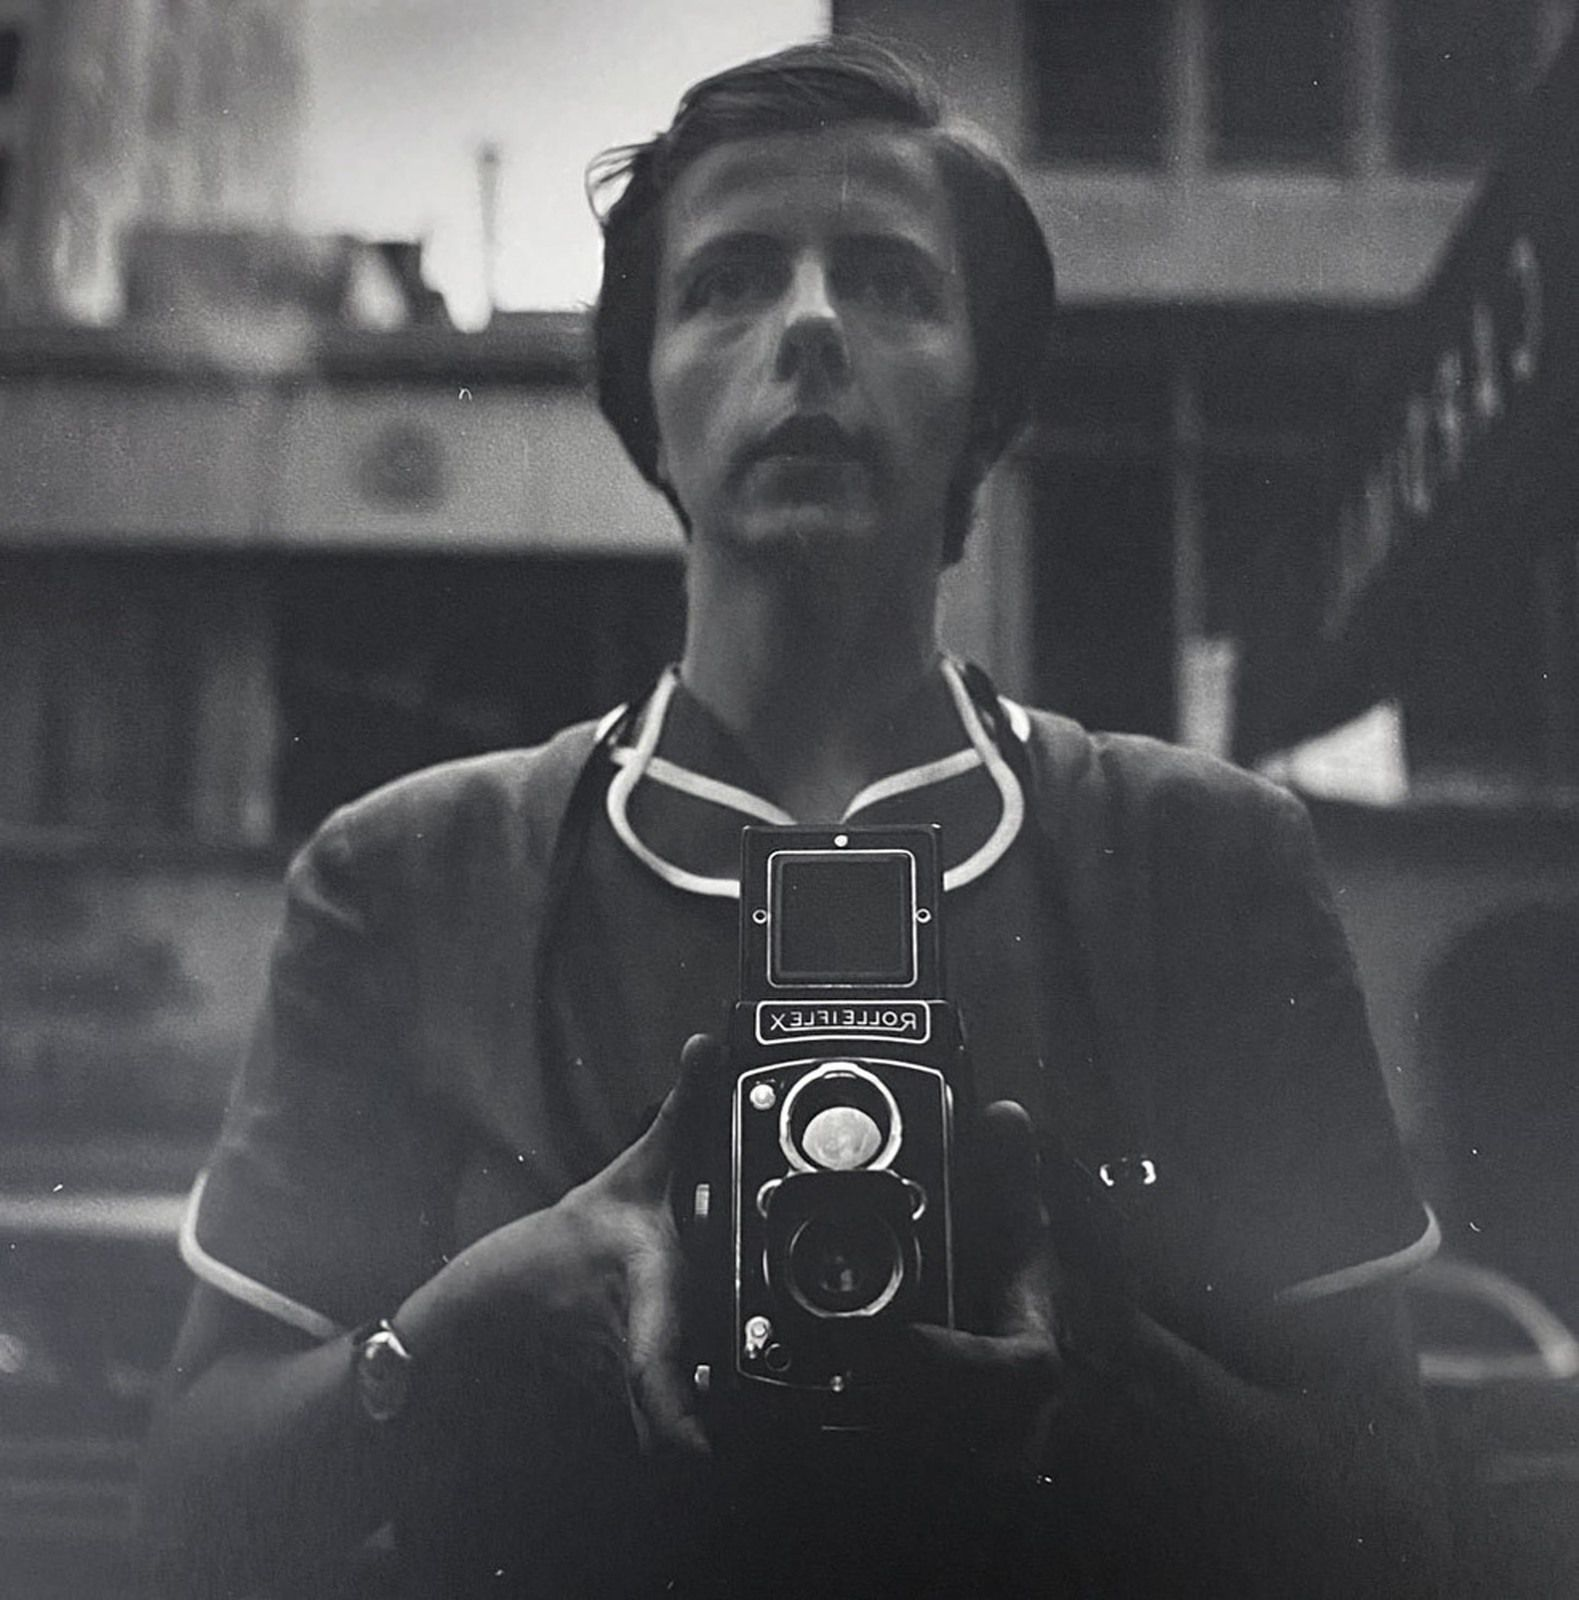 """Self-portrait, New York, NY"", 1954 de Vivian MAIER - Courtesy Les Douches la Galerie Paris"